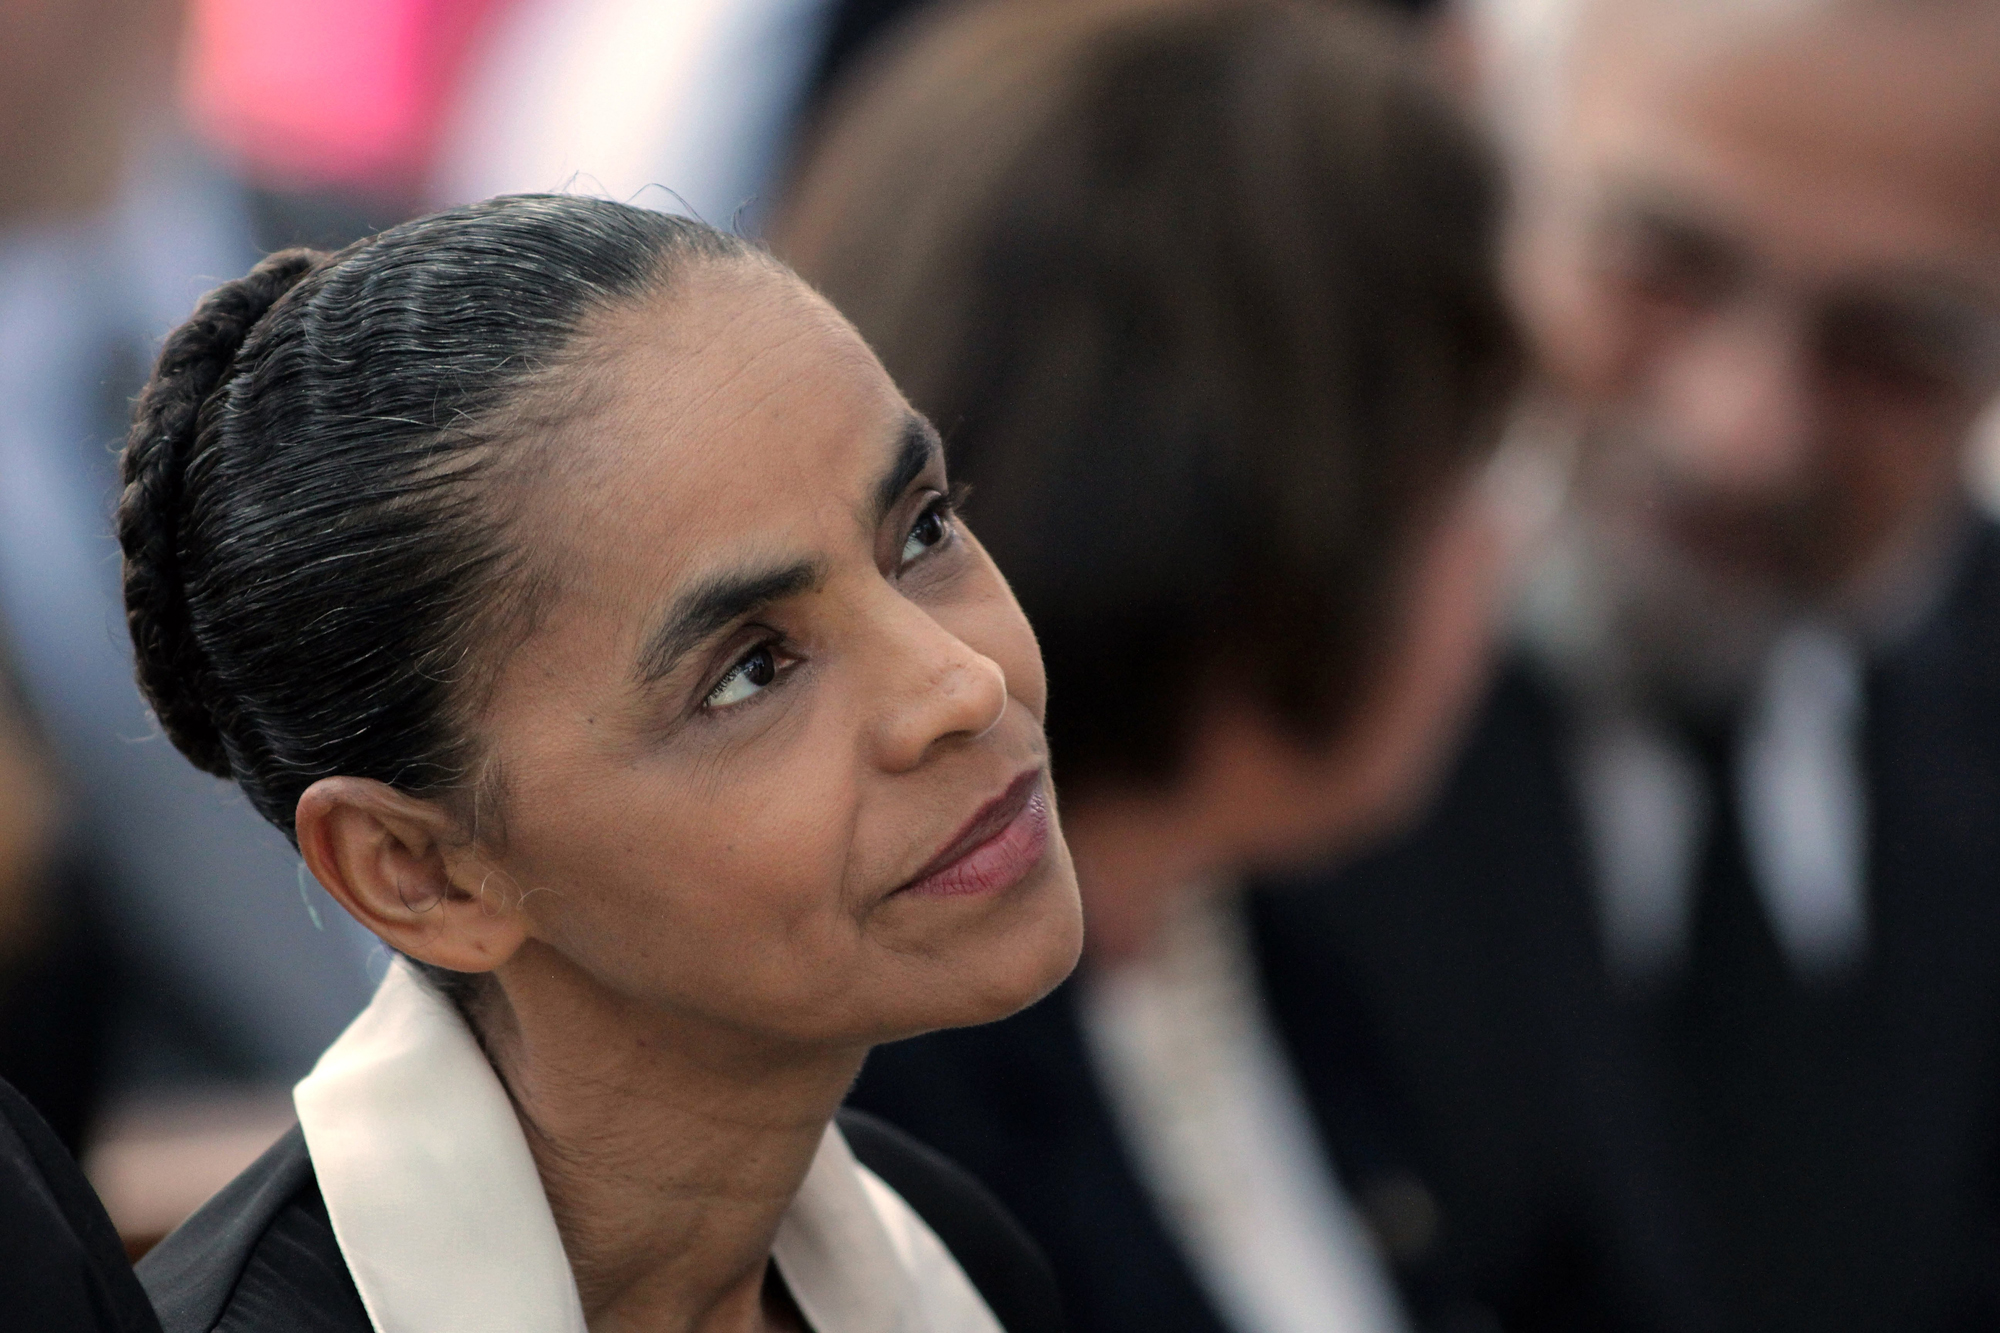 Brazilian Socialist Party presidential candidate Marina Silva attends a Mass for late presidential candidate Eduardo Campos at the Metropolitan Cathedral in Brasilia, Brazil on Aug. 19, 2014.